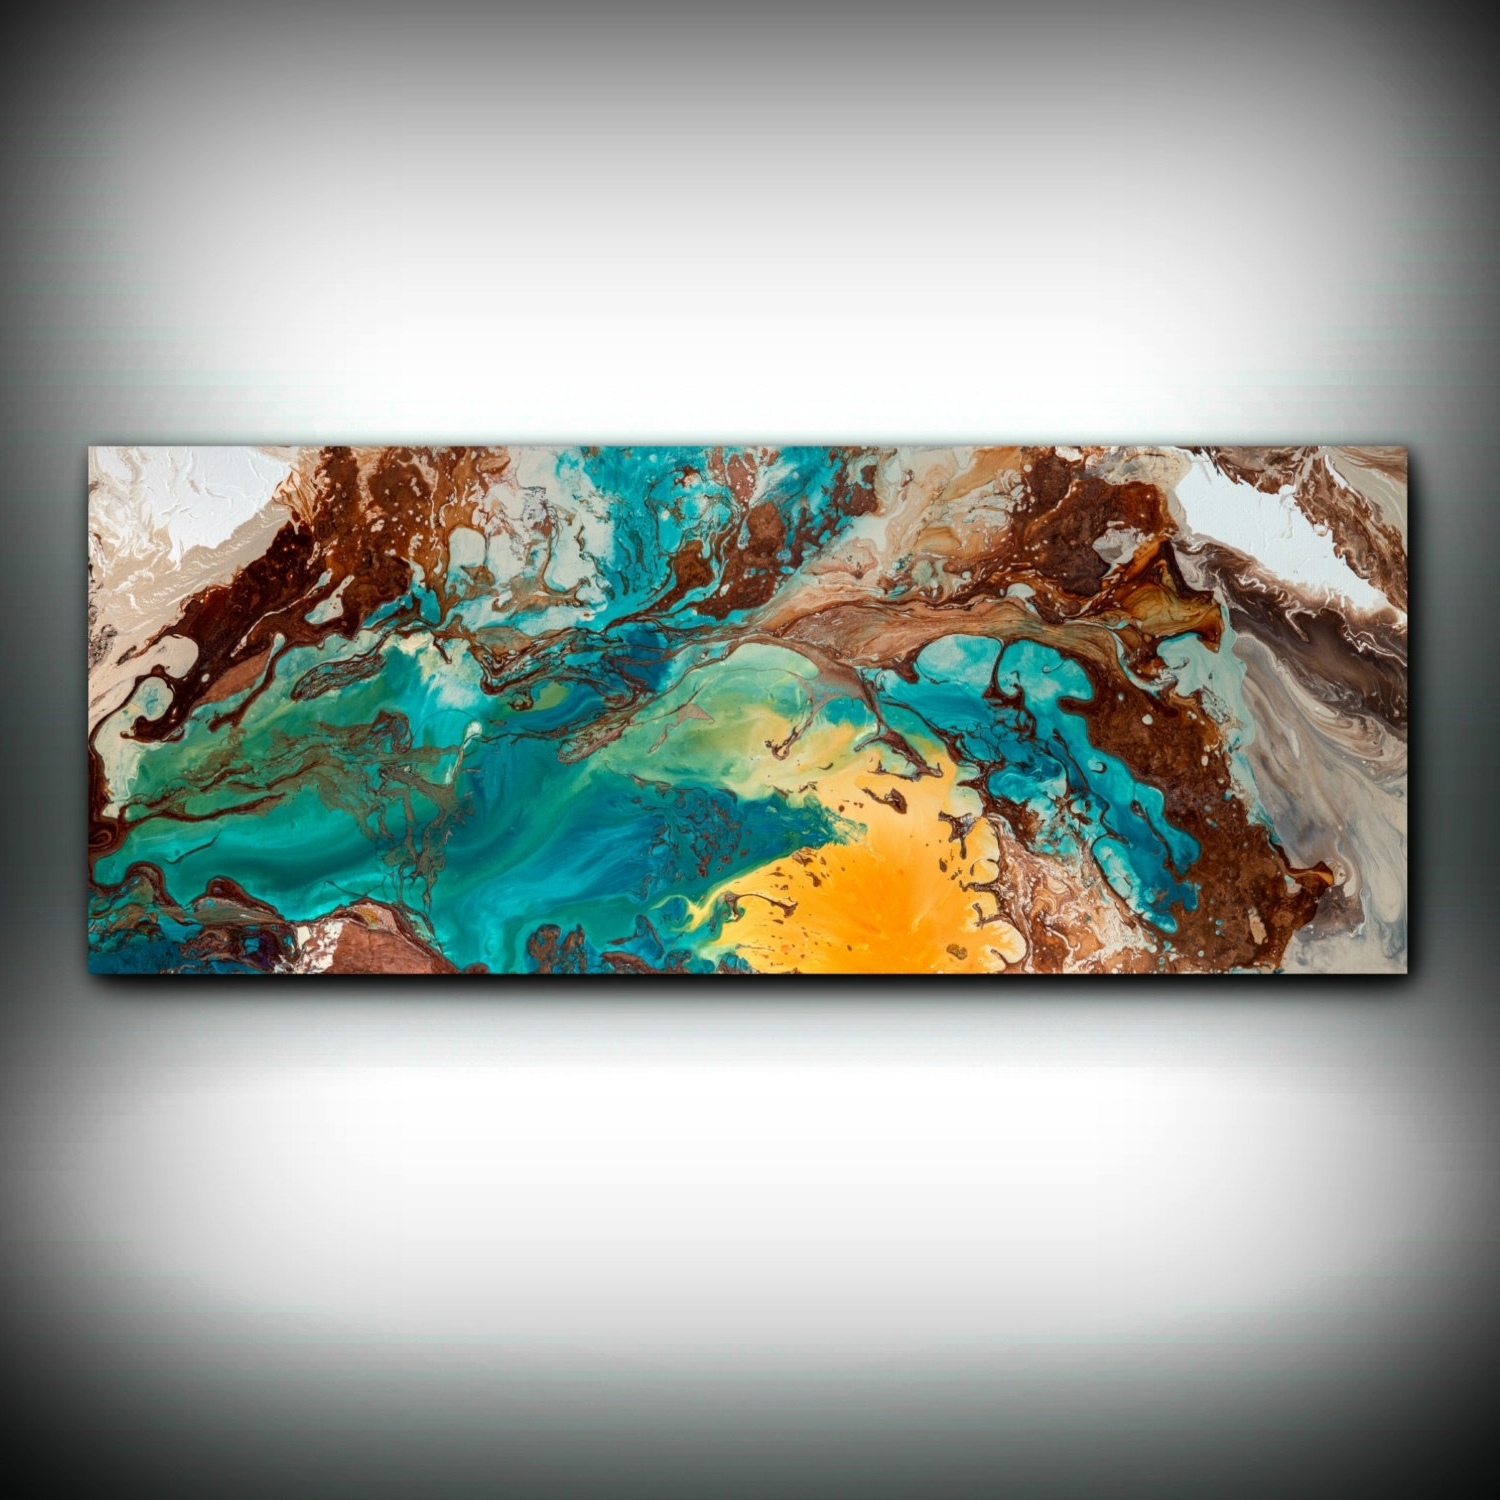 Newest Canvas Wall Decor Large Abstract Wall Art Print Blue Brown Modern For Abstract Oversized Canvas Wall Art (View 11 of 15)